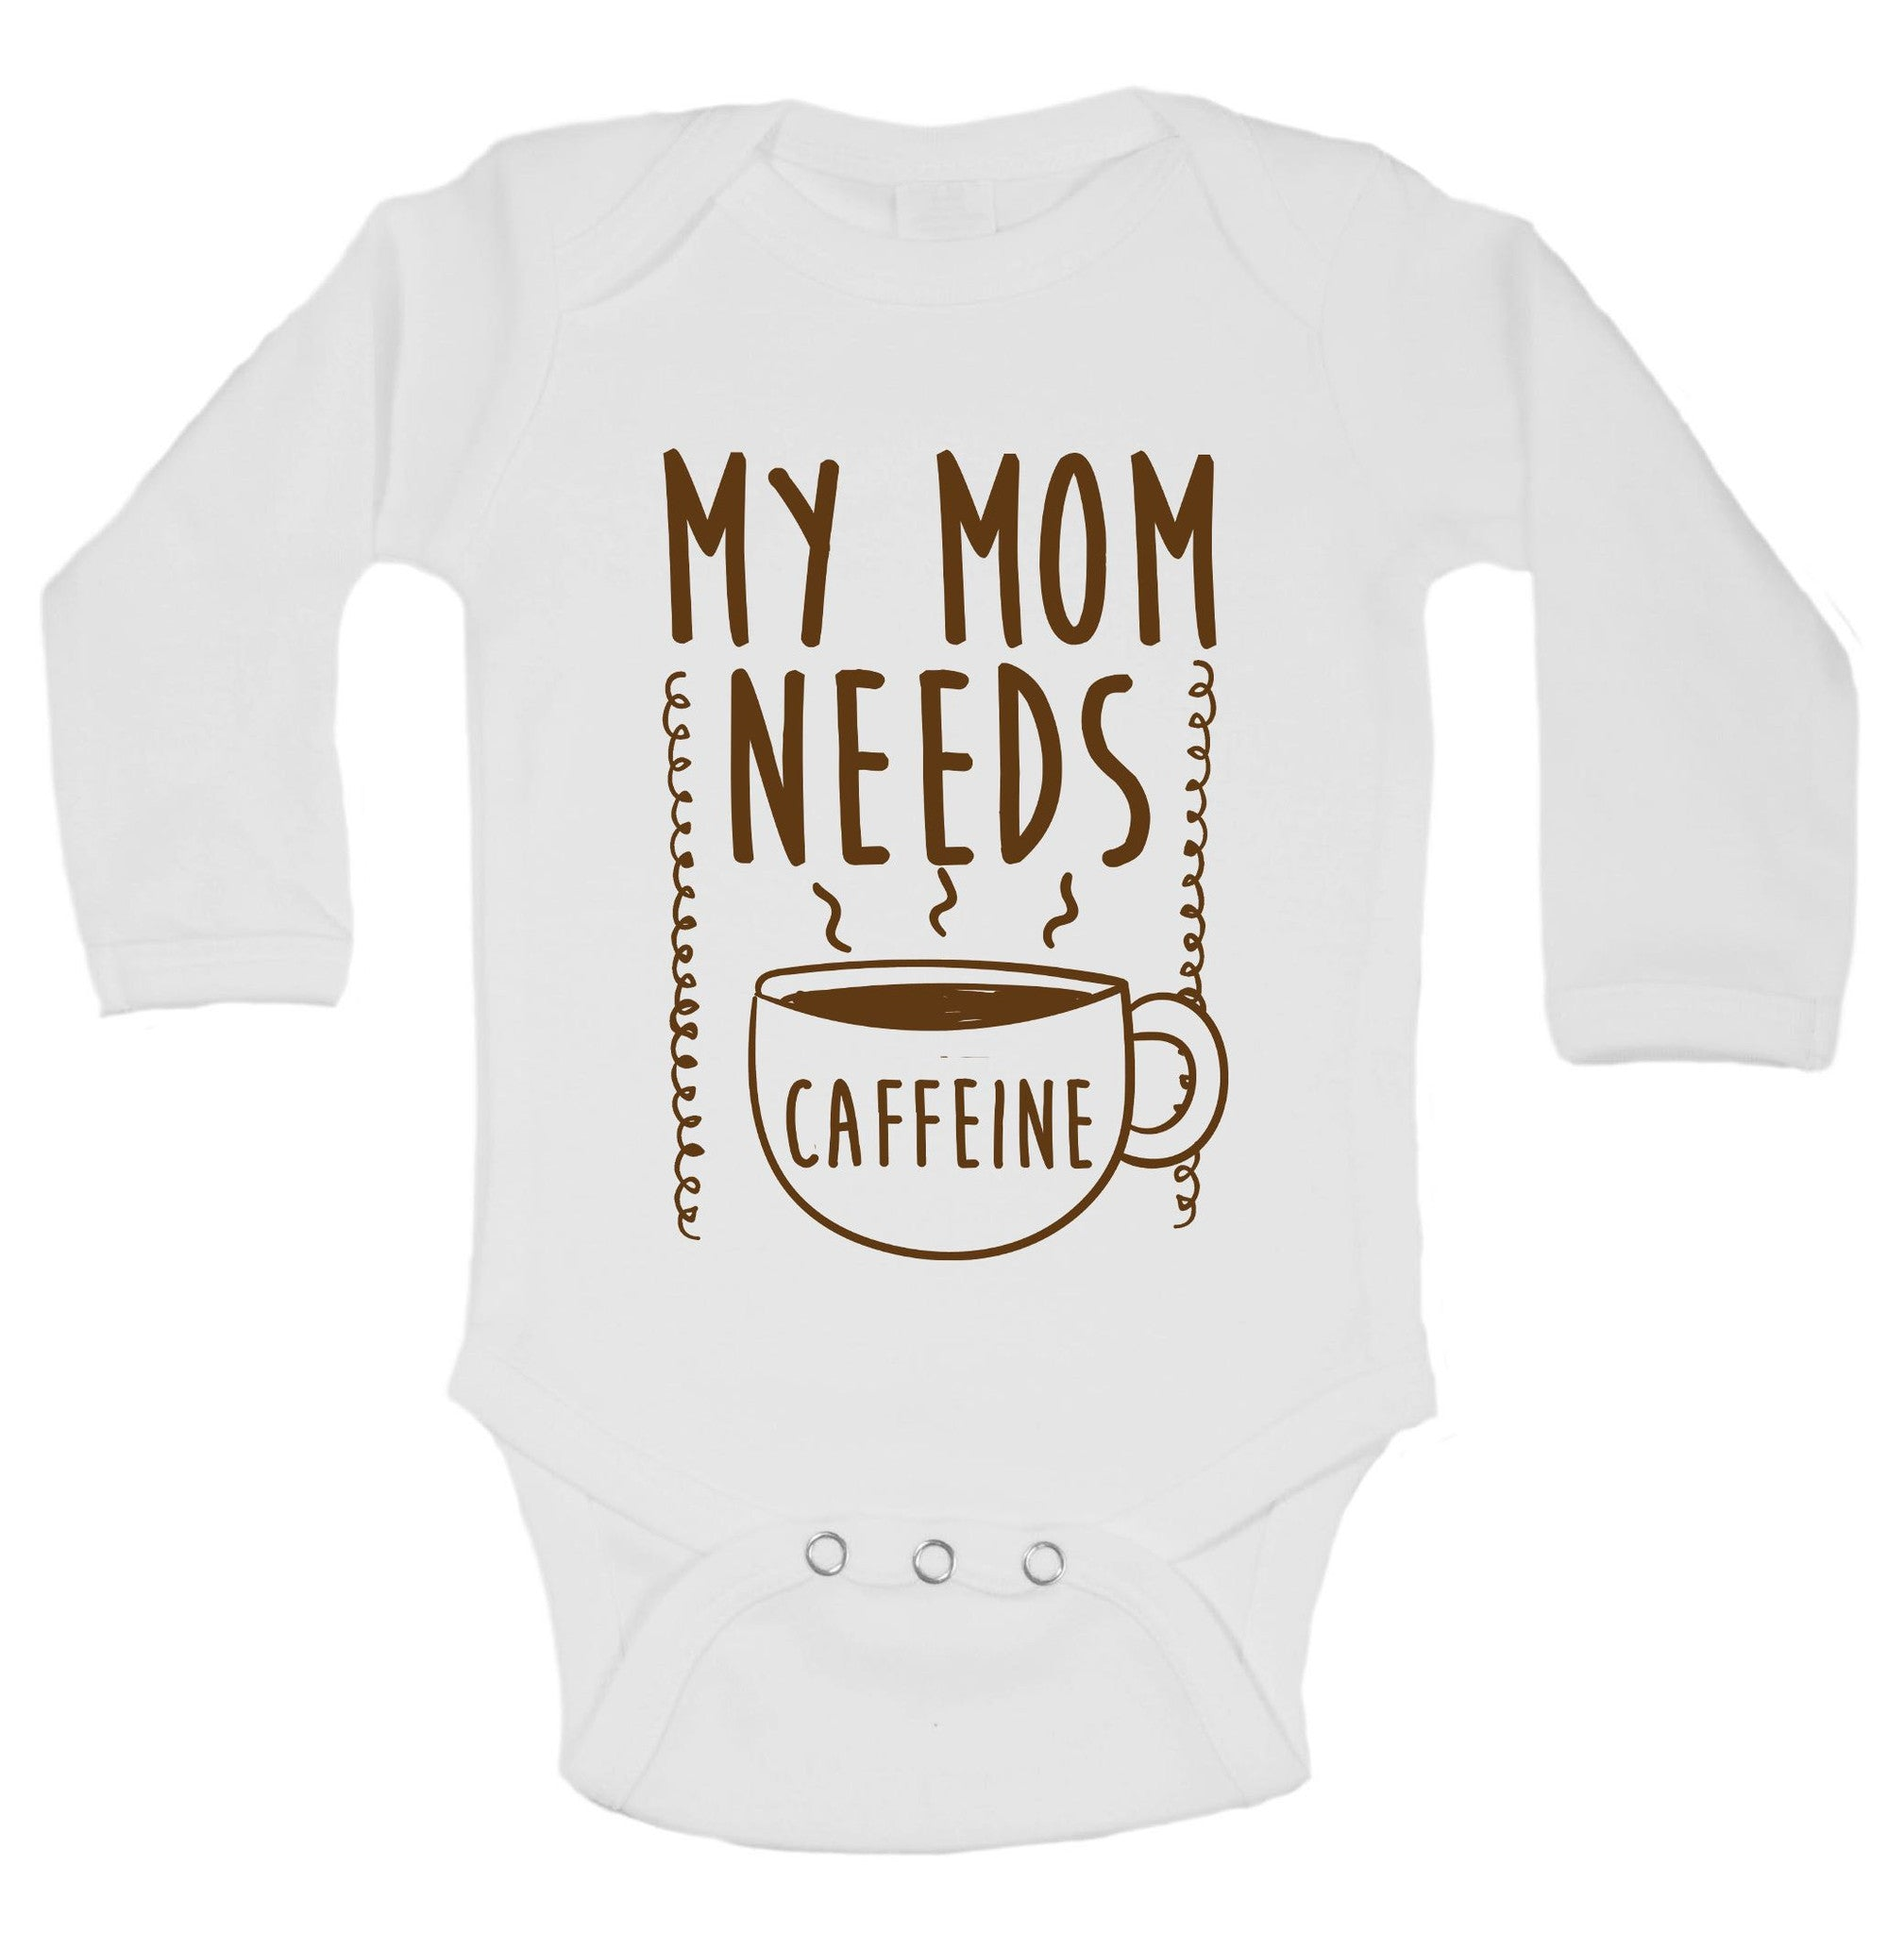 My Mom Needs Caffeine Funny Kids Onesie - B204 - Funny Shirts Tank Tops Burnouts and Triblends  - 1